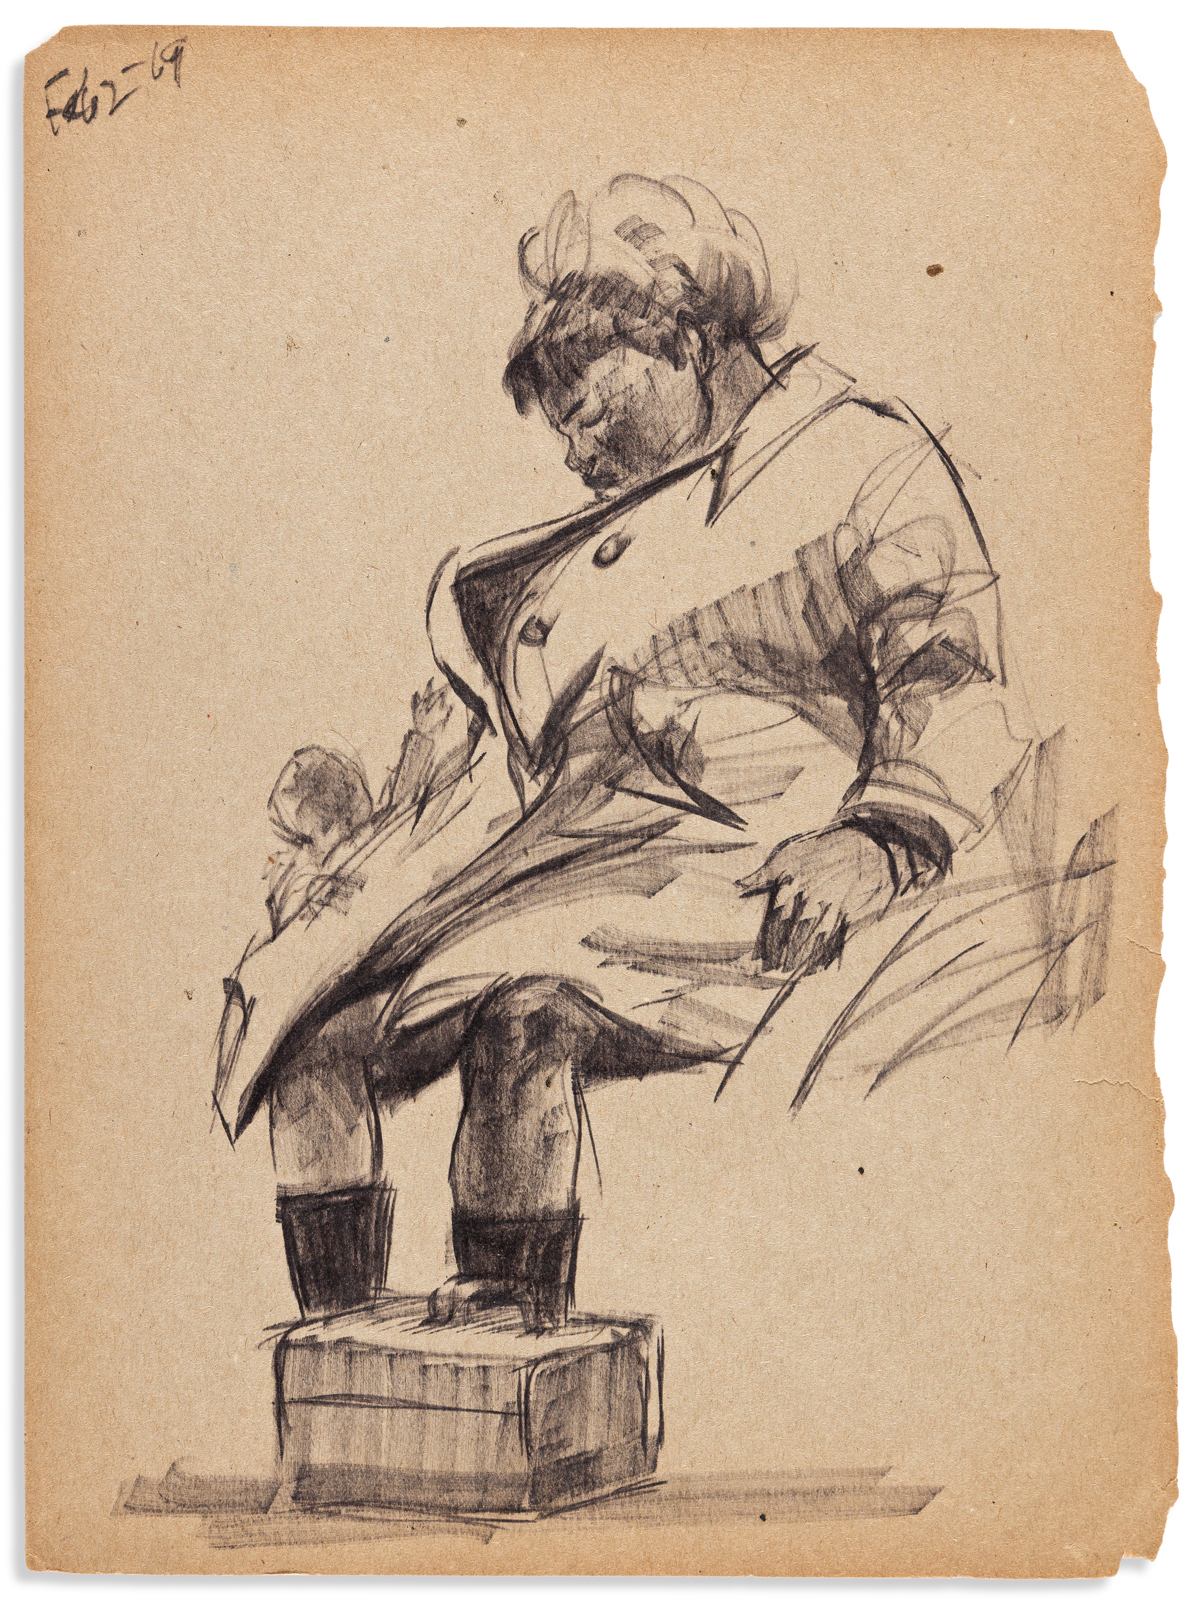 (ART.) Archive of sketches, correspondence, and other papers of Masood Ali Wilbert Warren.